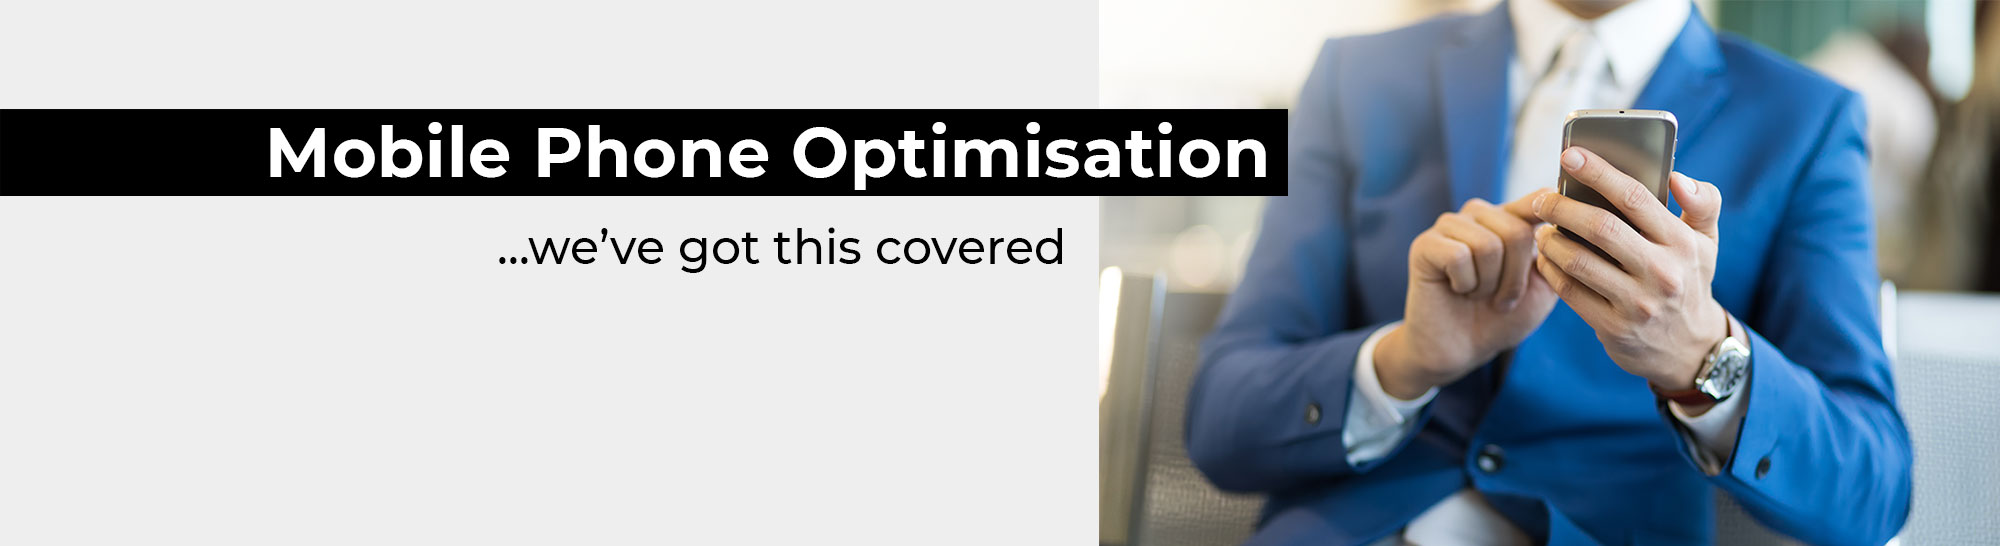 Mobile Phone Optimisation